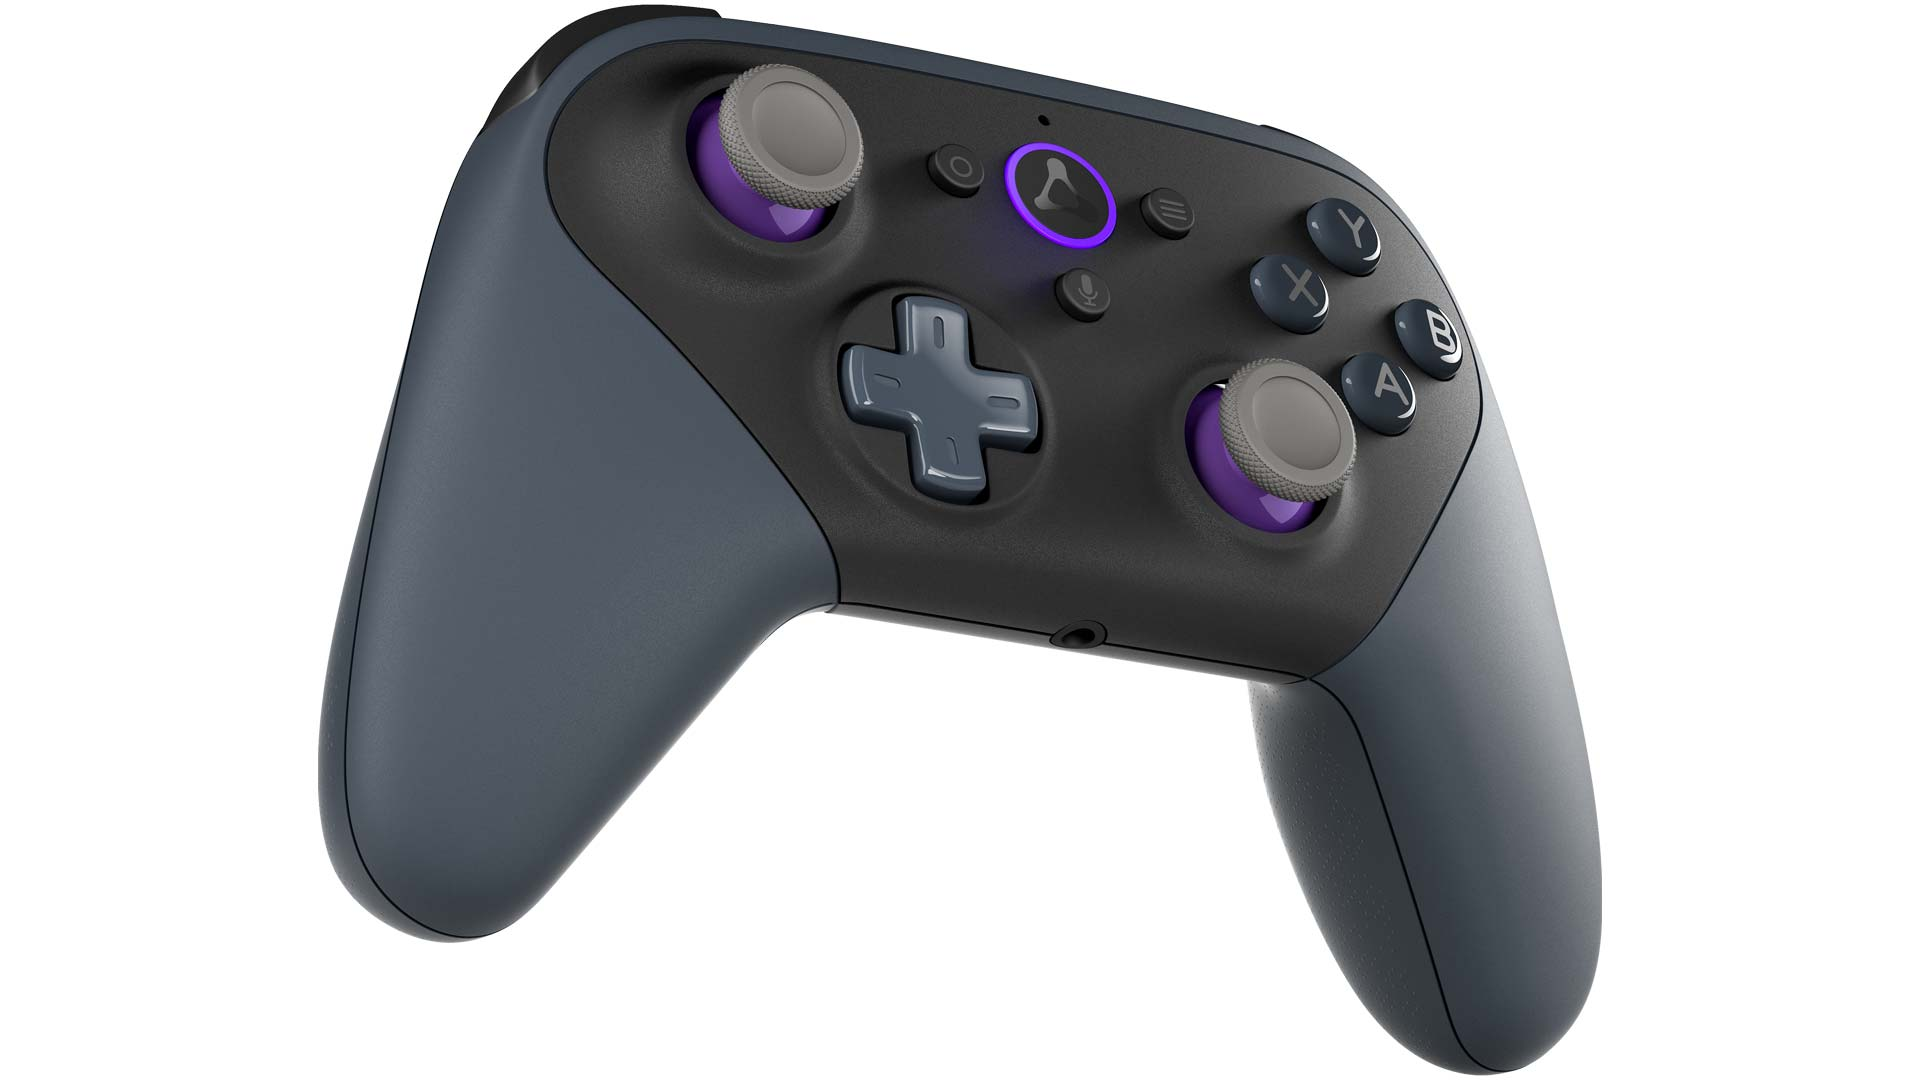 Luna Game Controller is on sale for $48.99 as an Early Prime Day Deal — 30% off